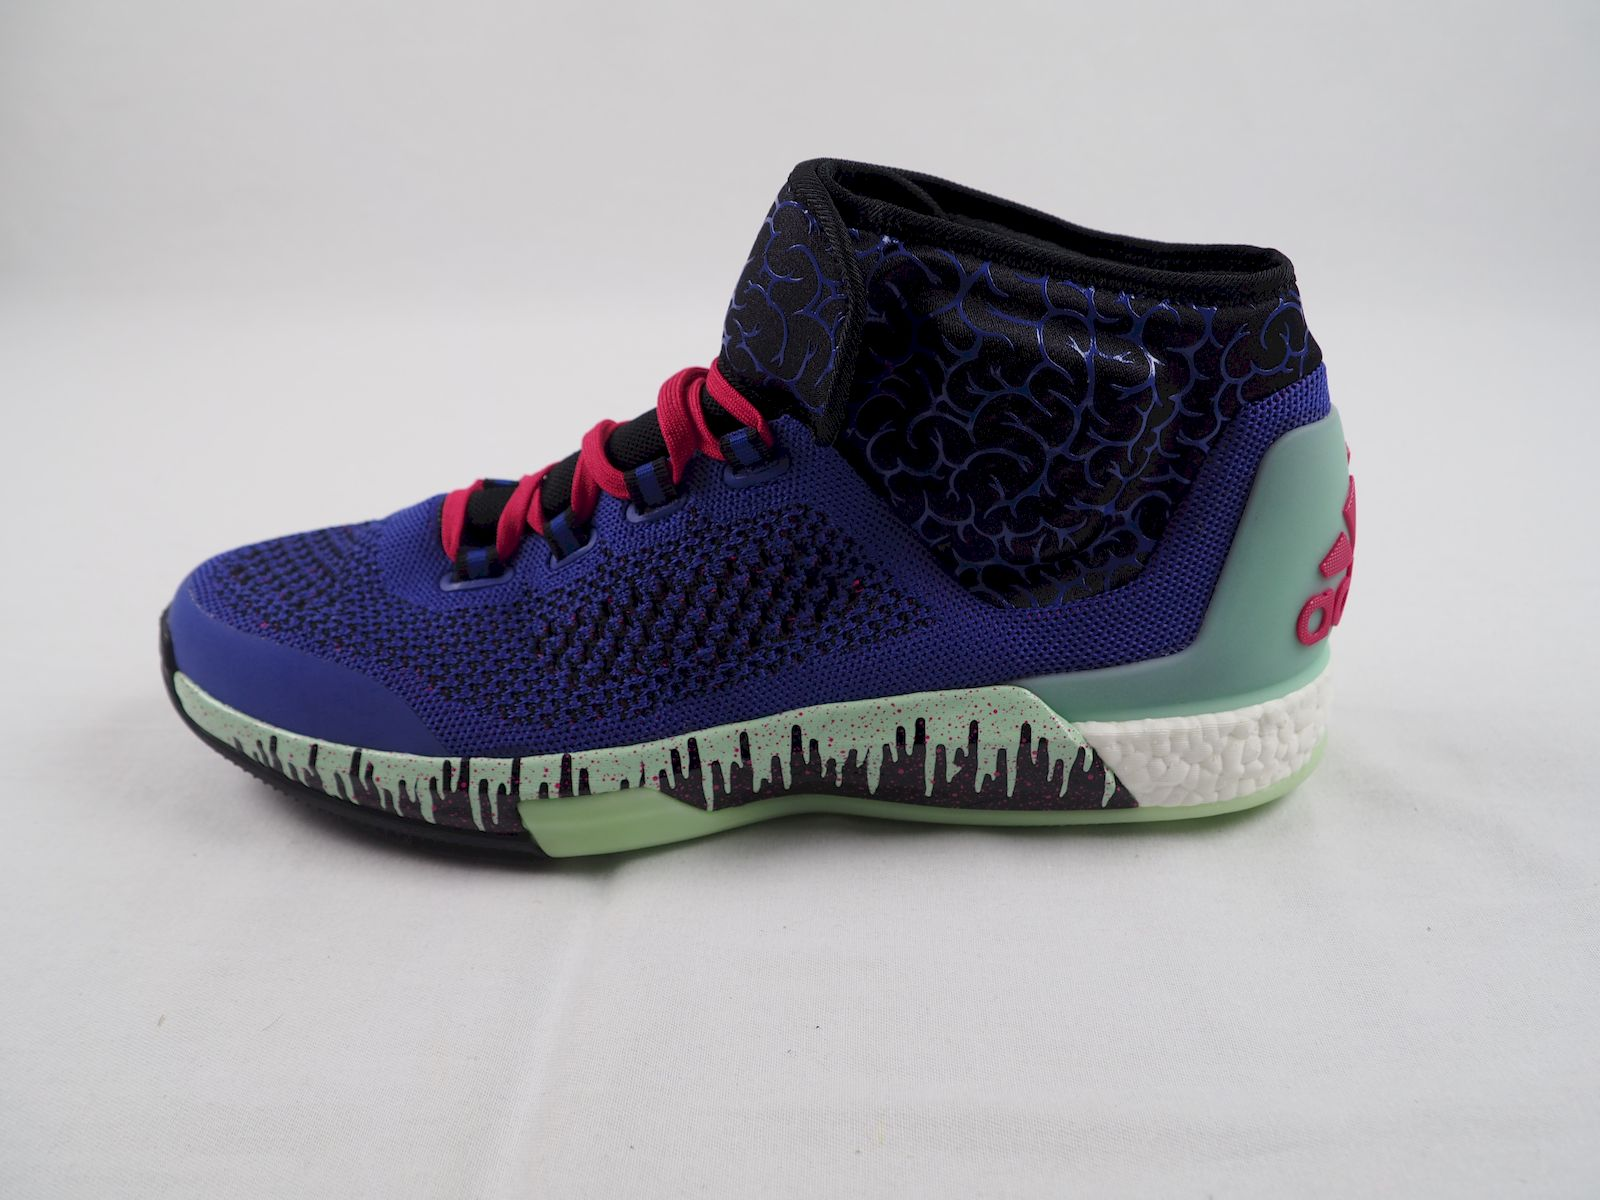 super popular 61301 d2396 adidas Techfit Glow in the Dark - Basketball Shoes (Mens 14.5) Used